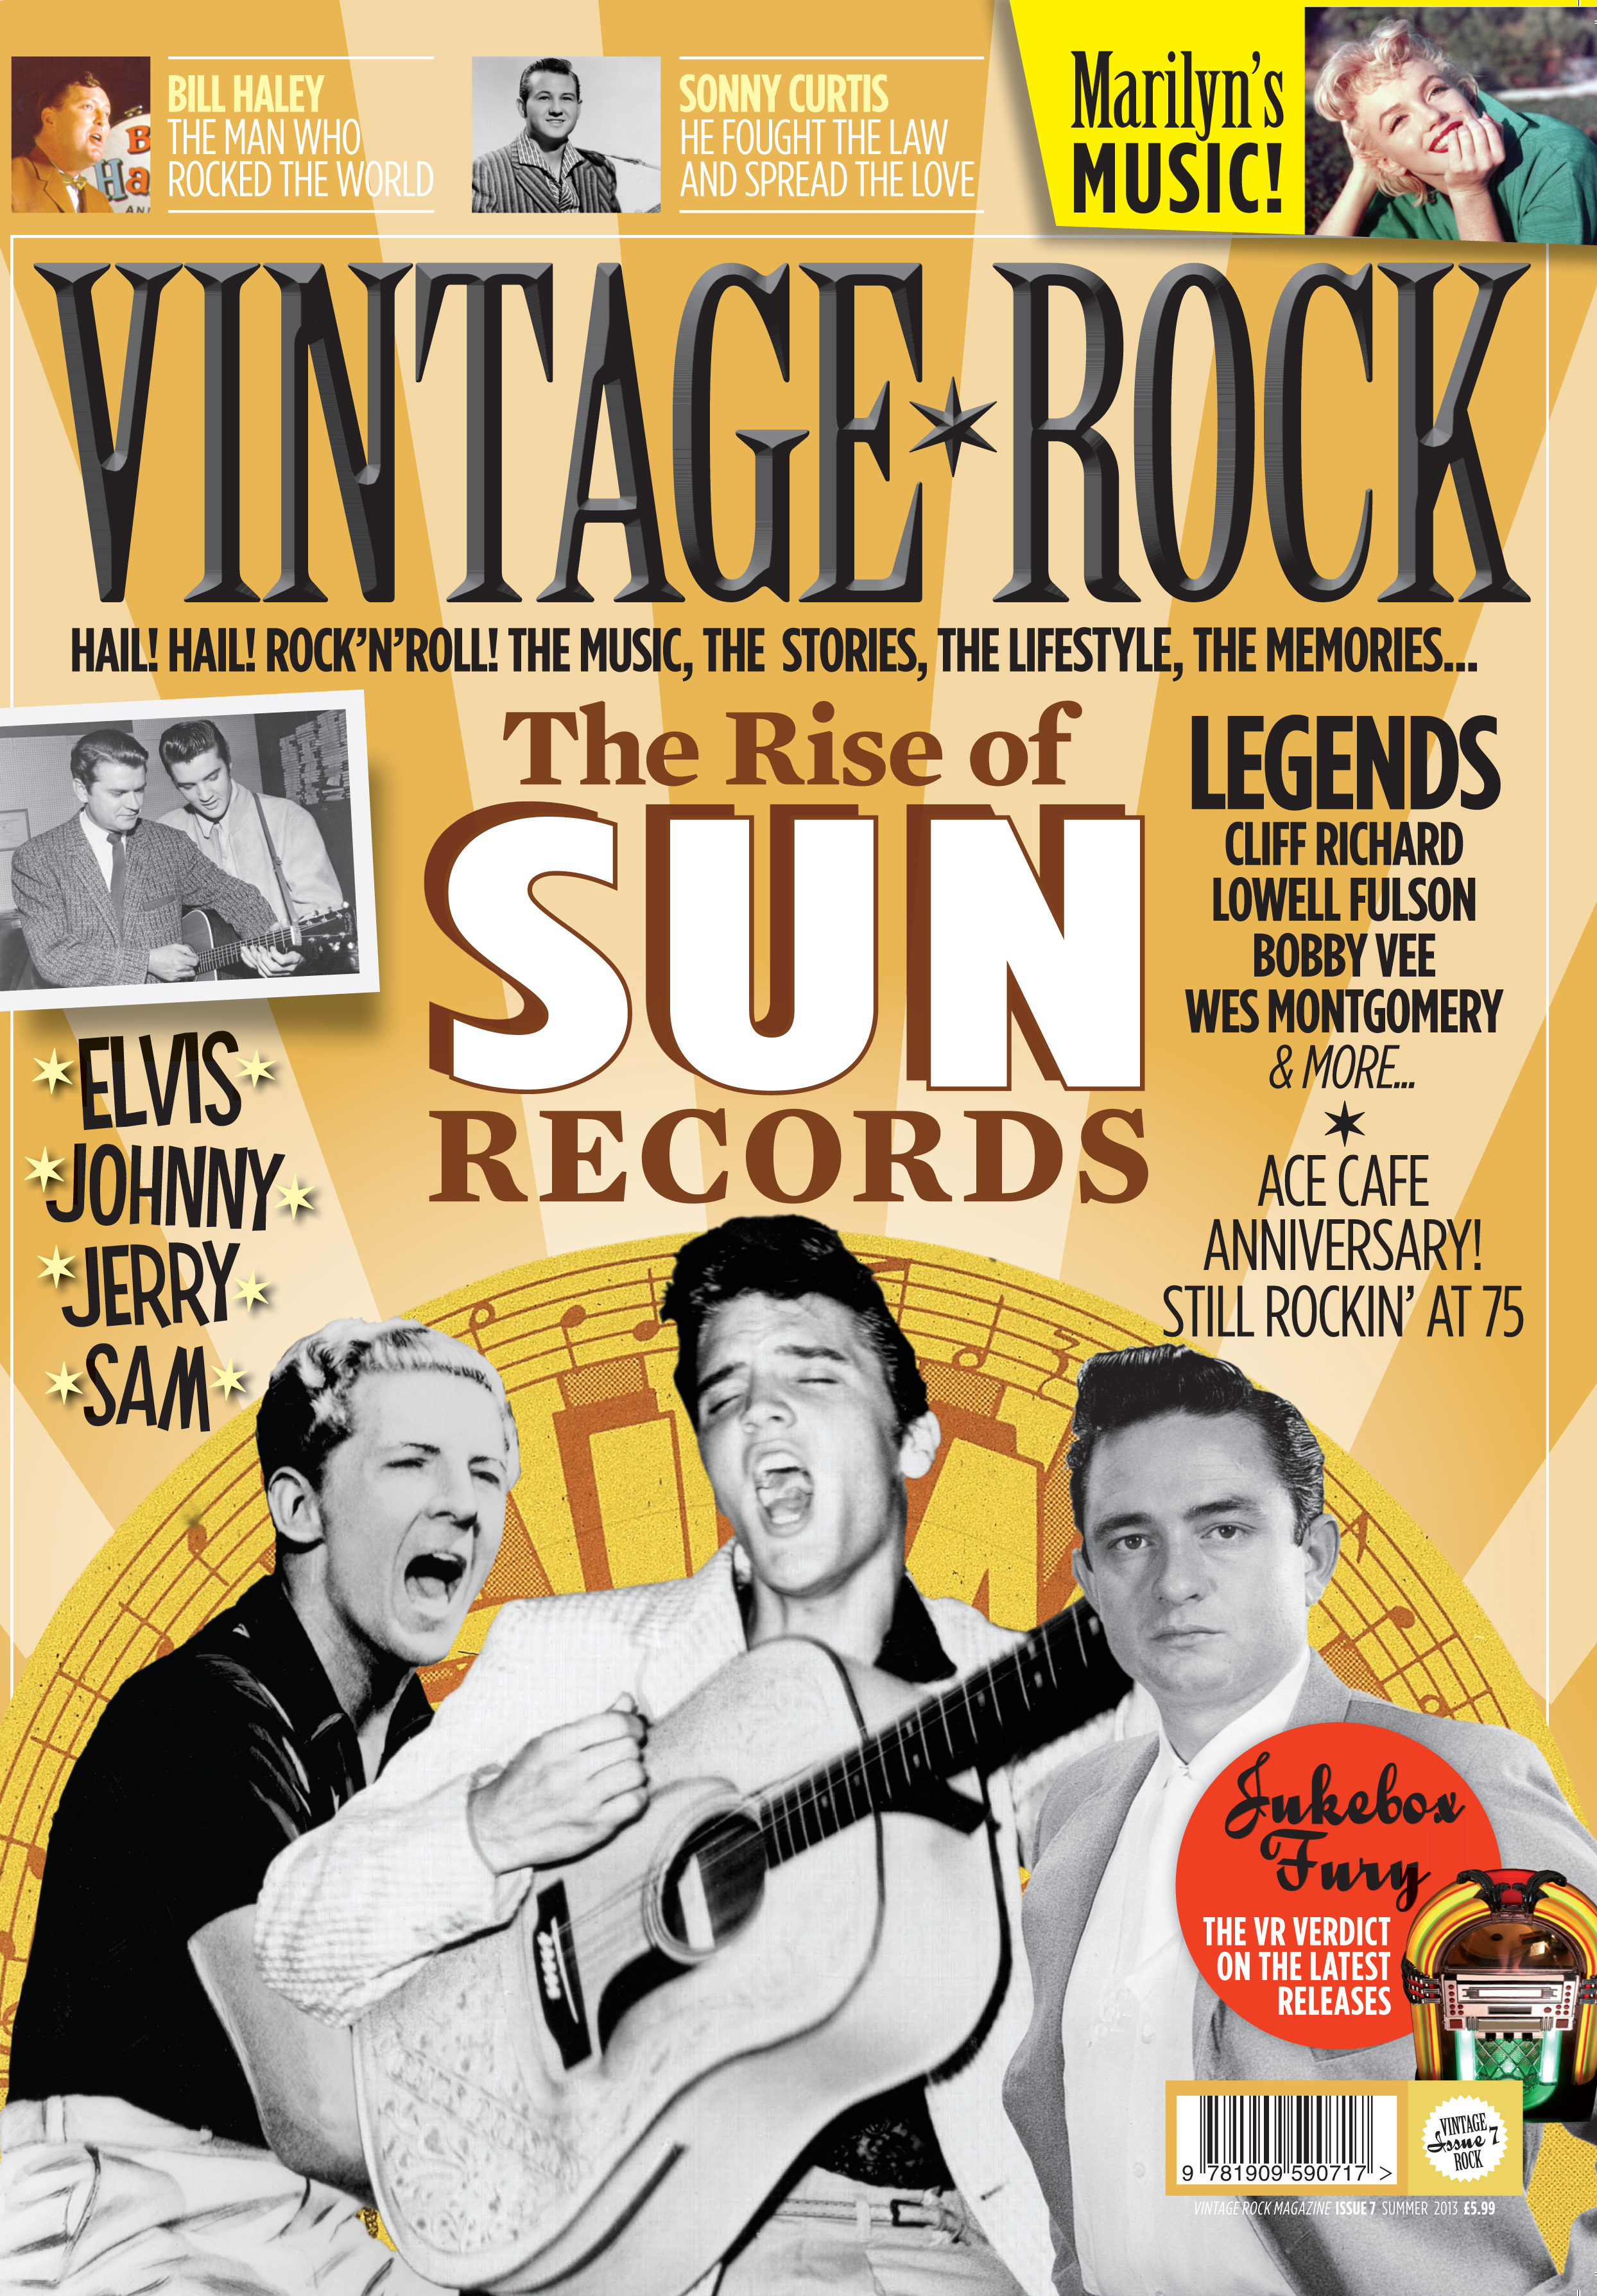 Issue Seven Of Vintage Rock Is On Sale Now!